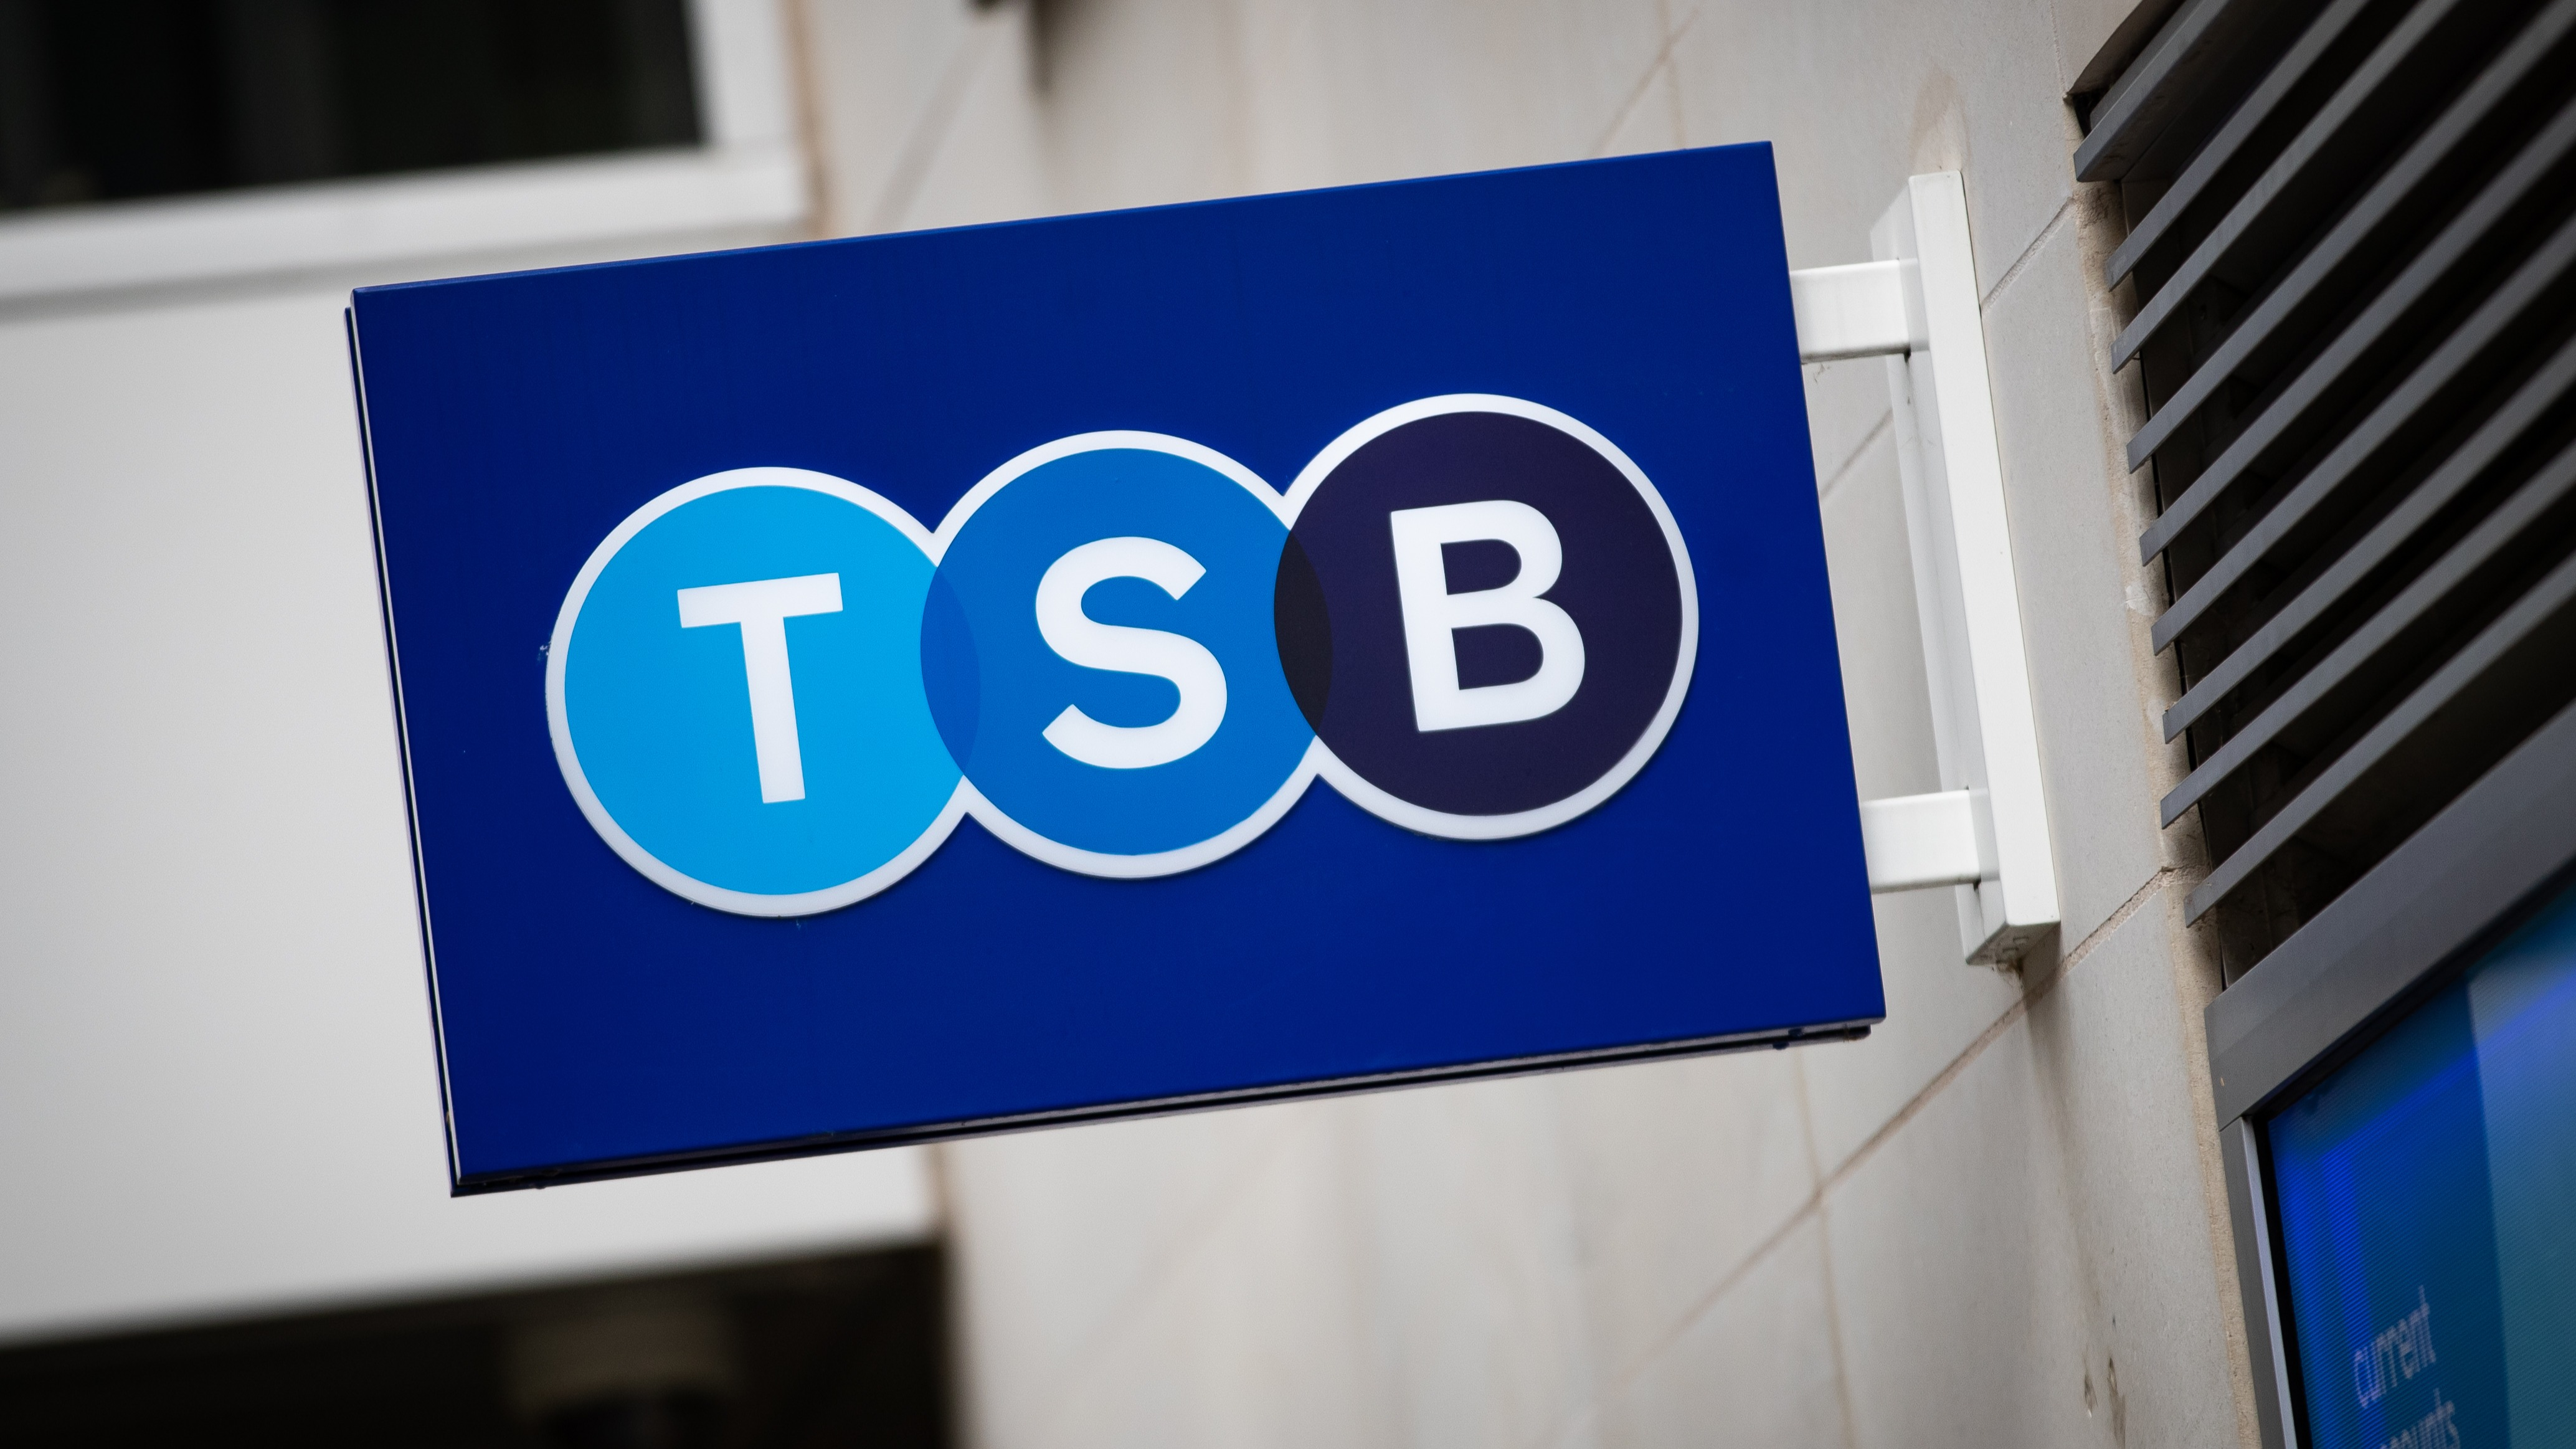 What TSB branches are closing? | ITV News